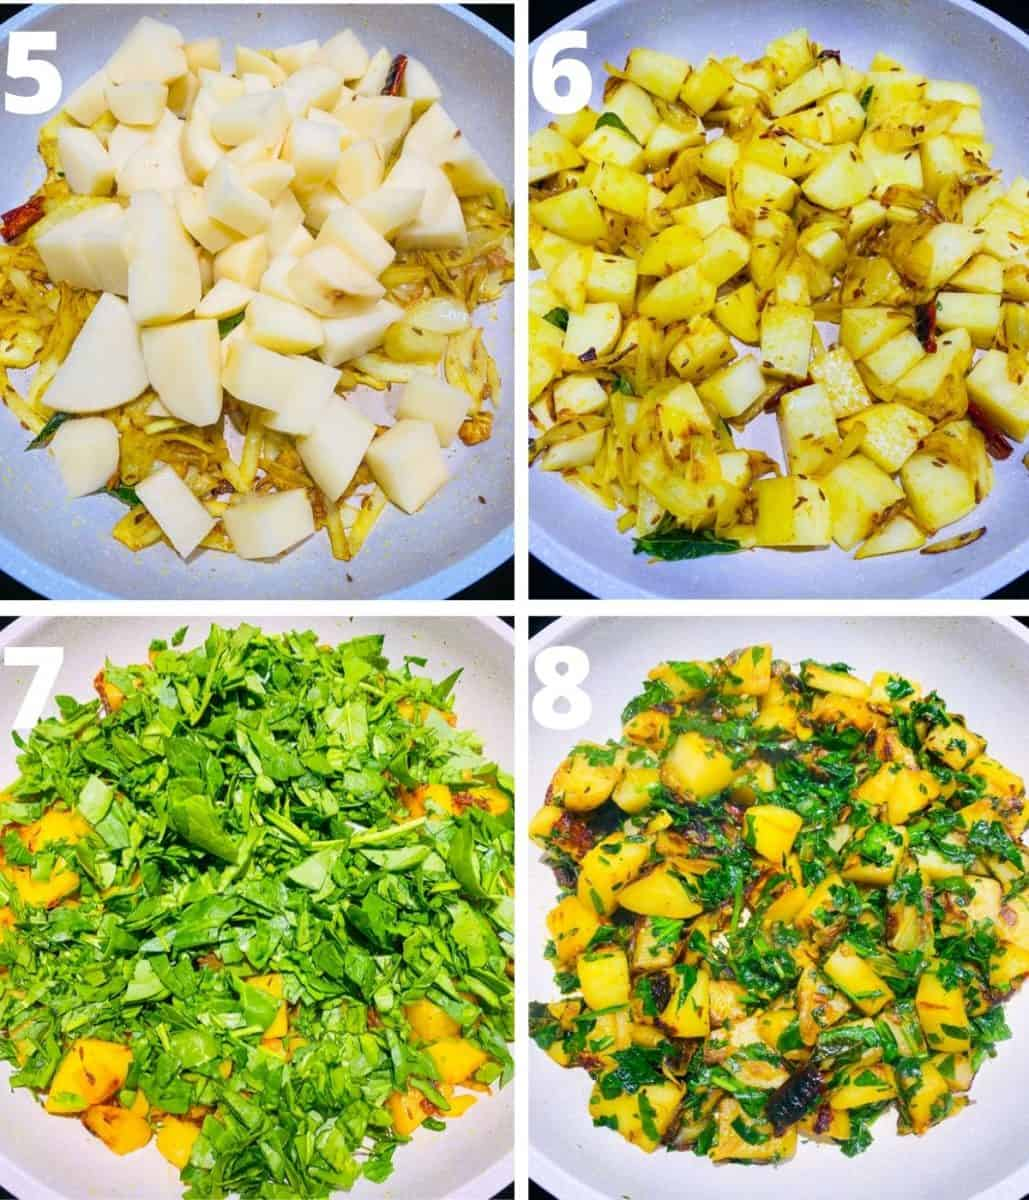 Collage image of Aloo palak recipe. This shows the steps 5 to 8 from adding potatoes to finishing the dish.